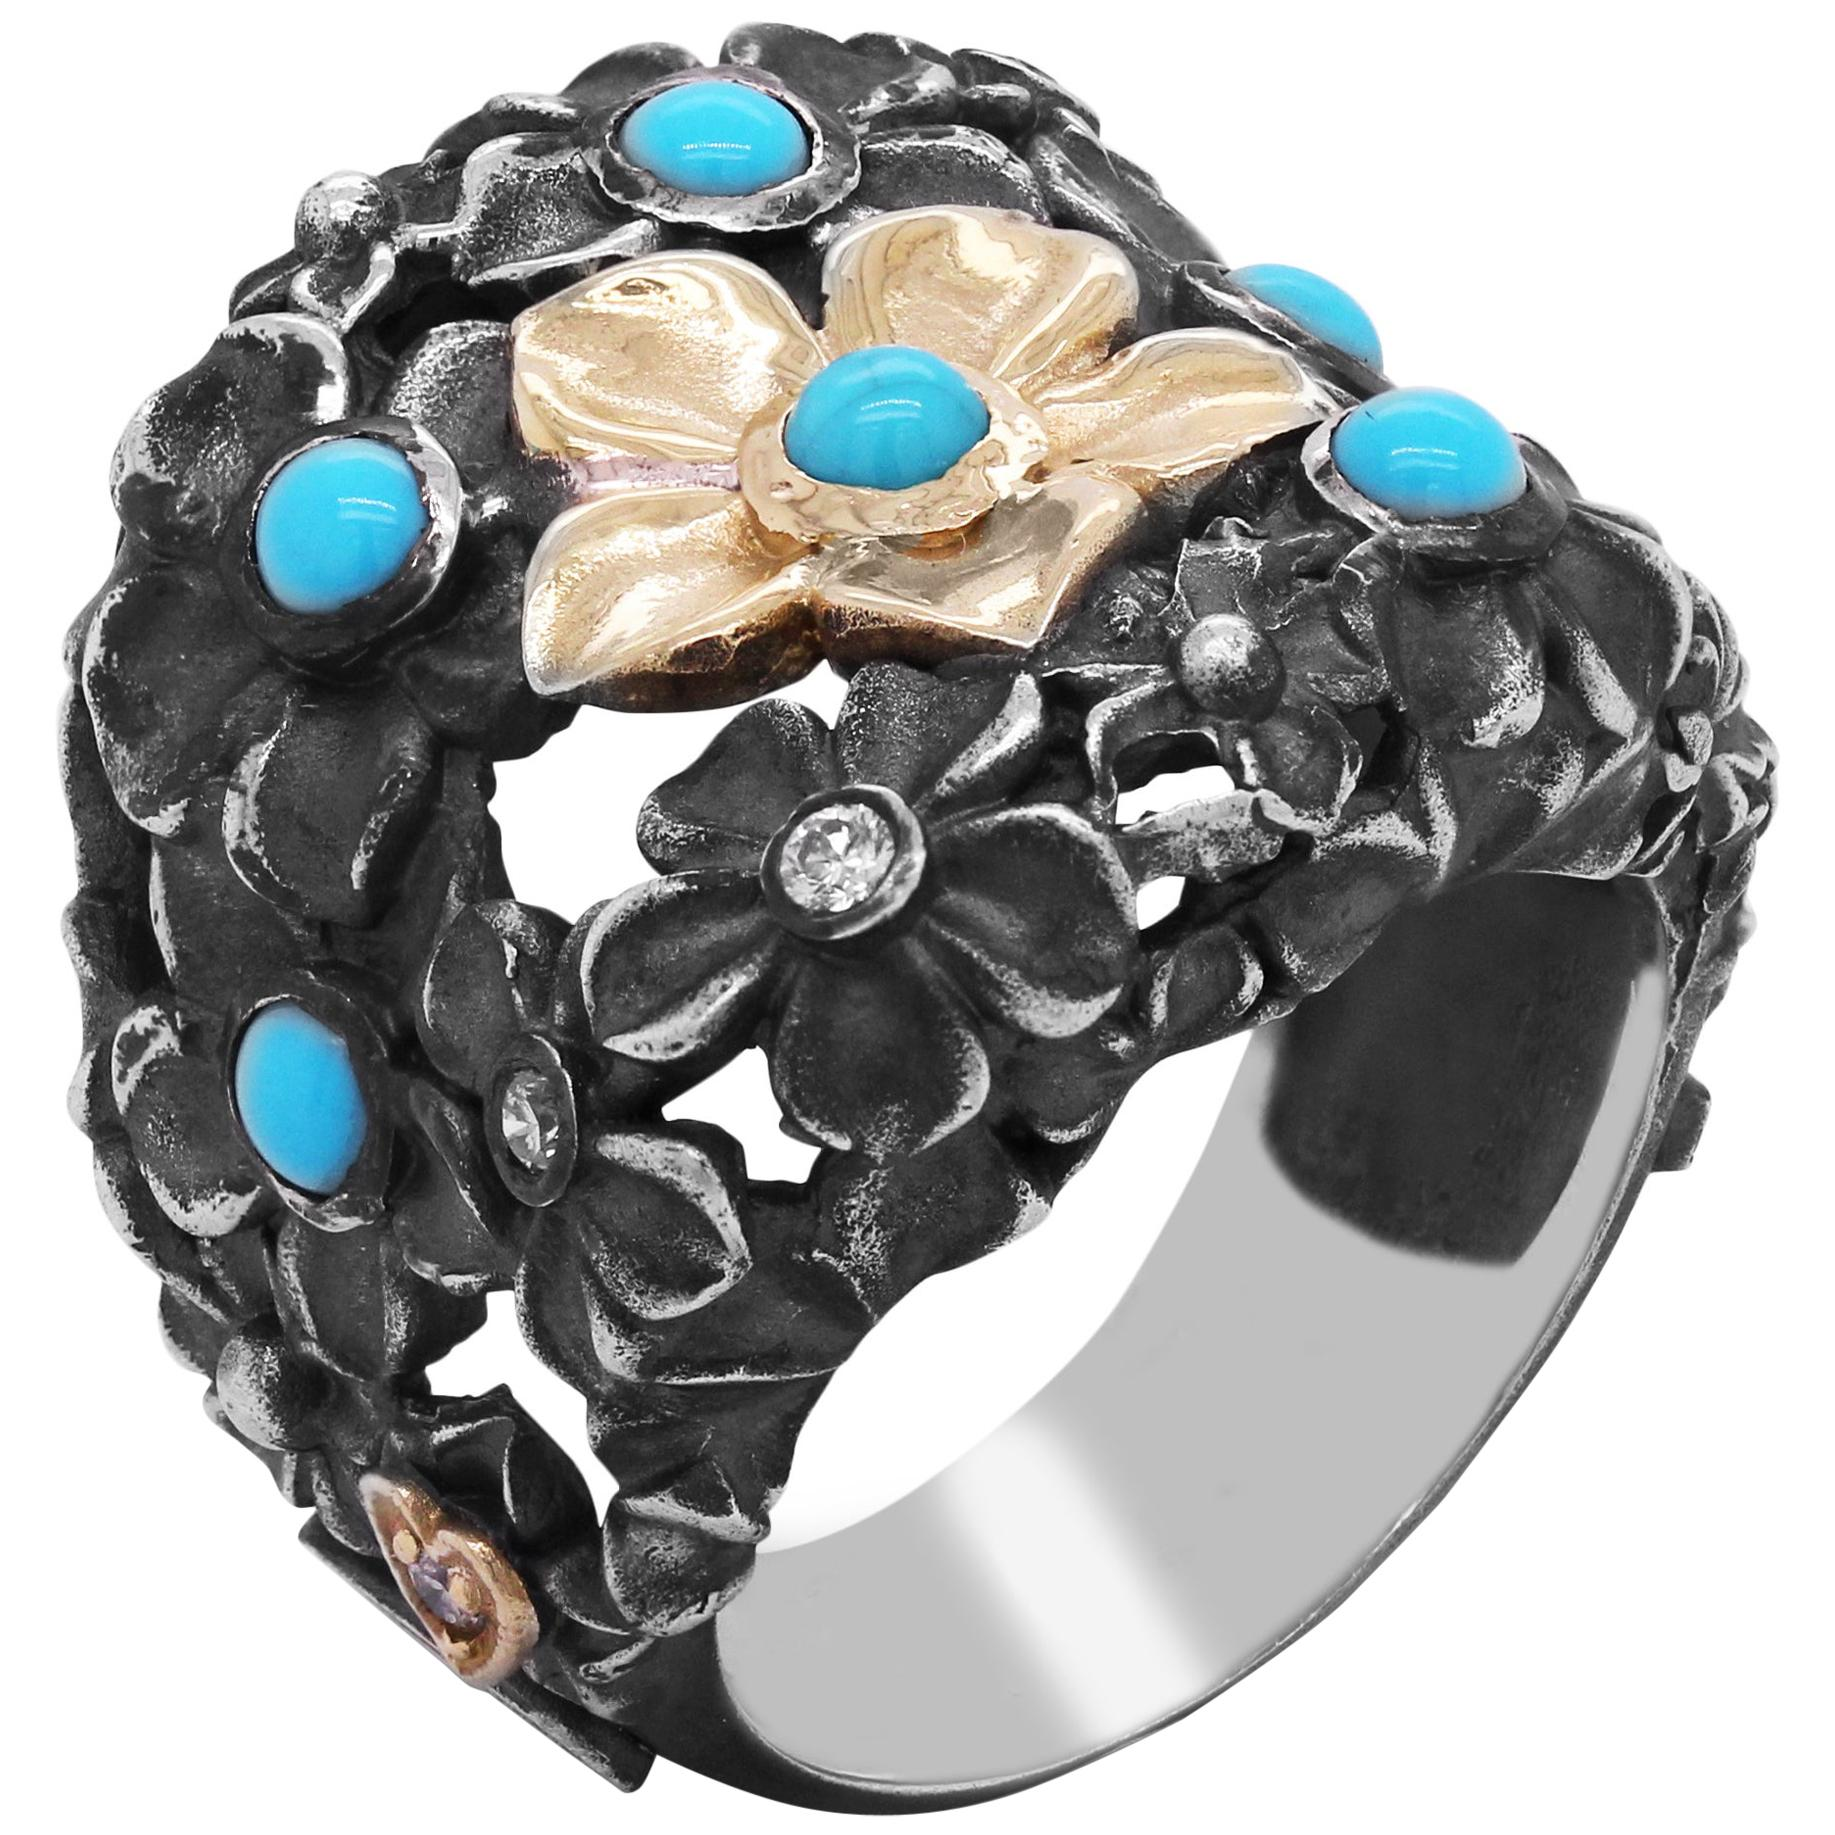 Stambolian Aged Silver and 18 Karat Gold Floral Ring with Turquoise and Diamonds